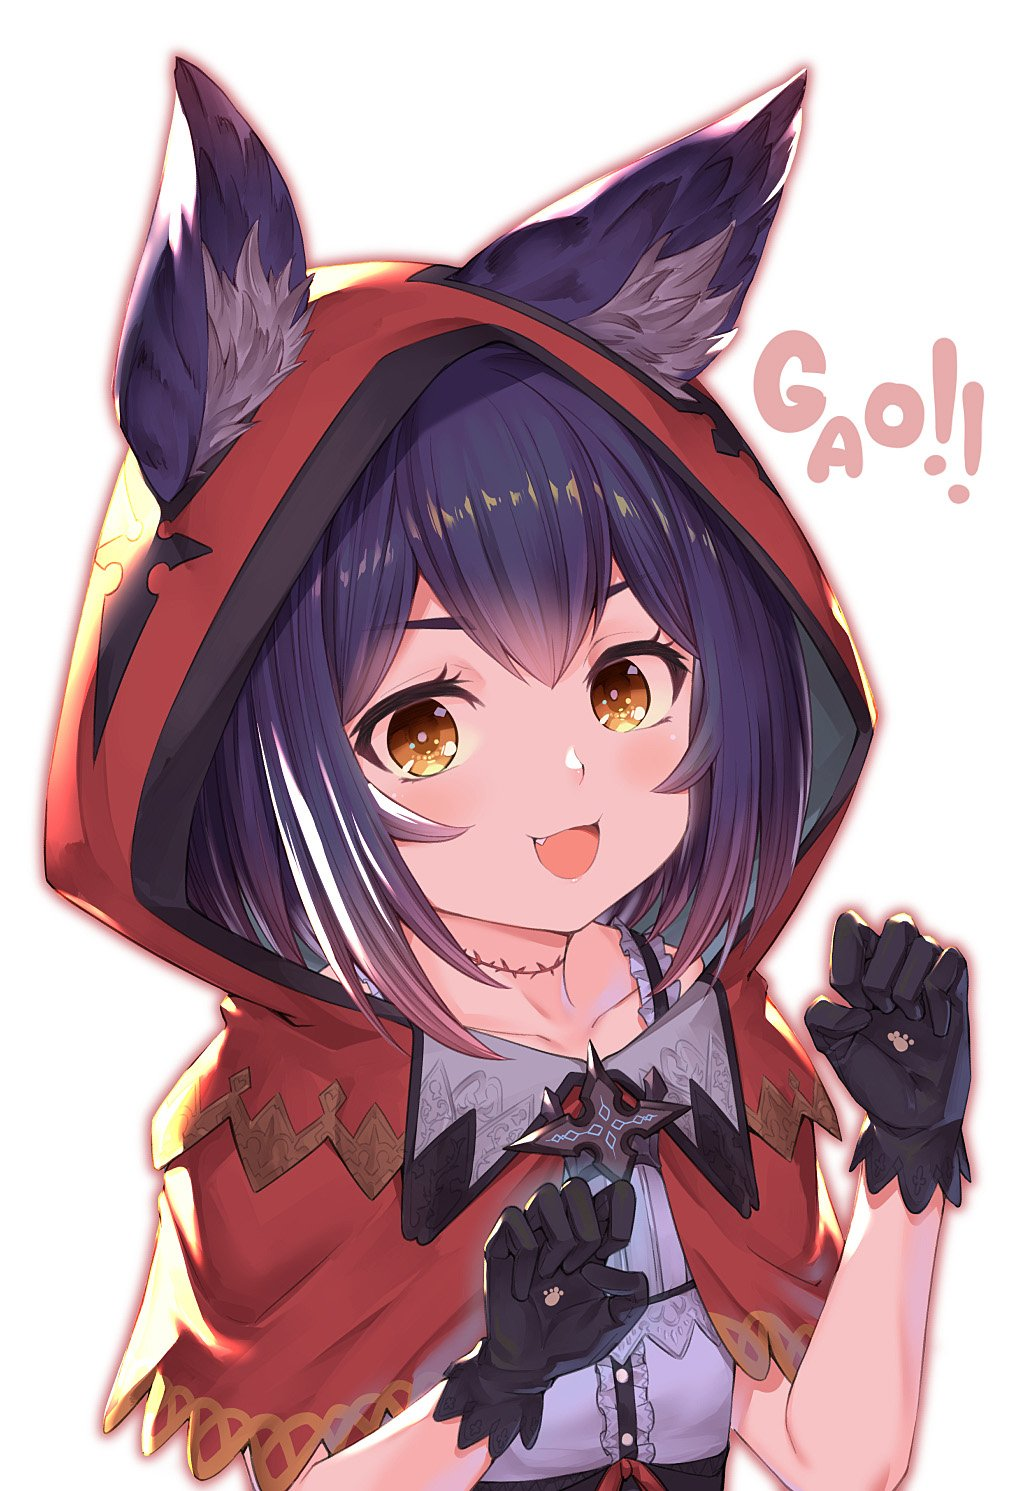 1girl :d akanagi_youto animal_ears bangs black_gloves blush capelet claw_pose collarbone commentary_request fang gloves hands_up highres hood hooded_capelet looking_at_viewer open_mouth original paw_print purple_hair red_capelet red_hood shirt short_hair simple_background smile solo stitches upper_body white_background white_shirt wolf_ears yellow_eyes